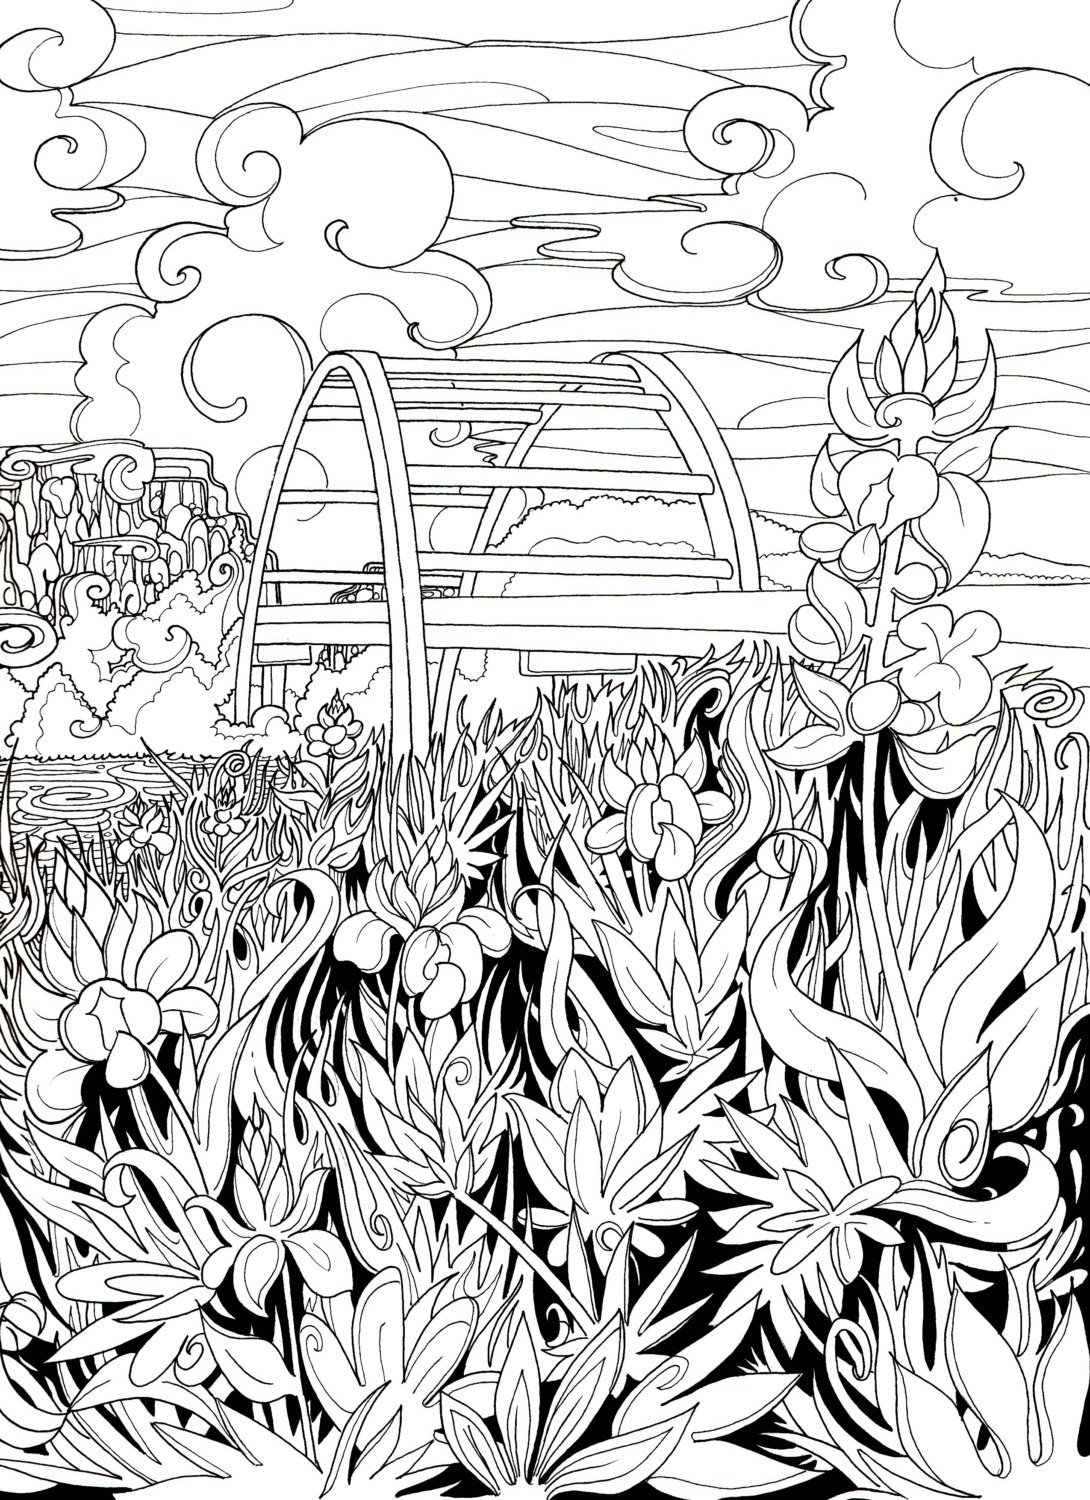 1090x1500 Austin Bluebonnets Coloring Page By Borrelli Illustrations